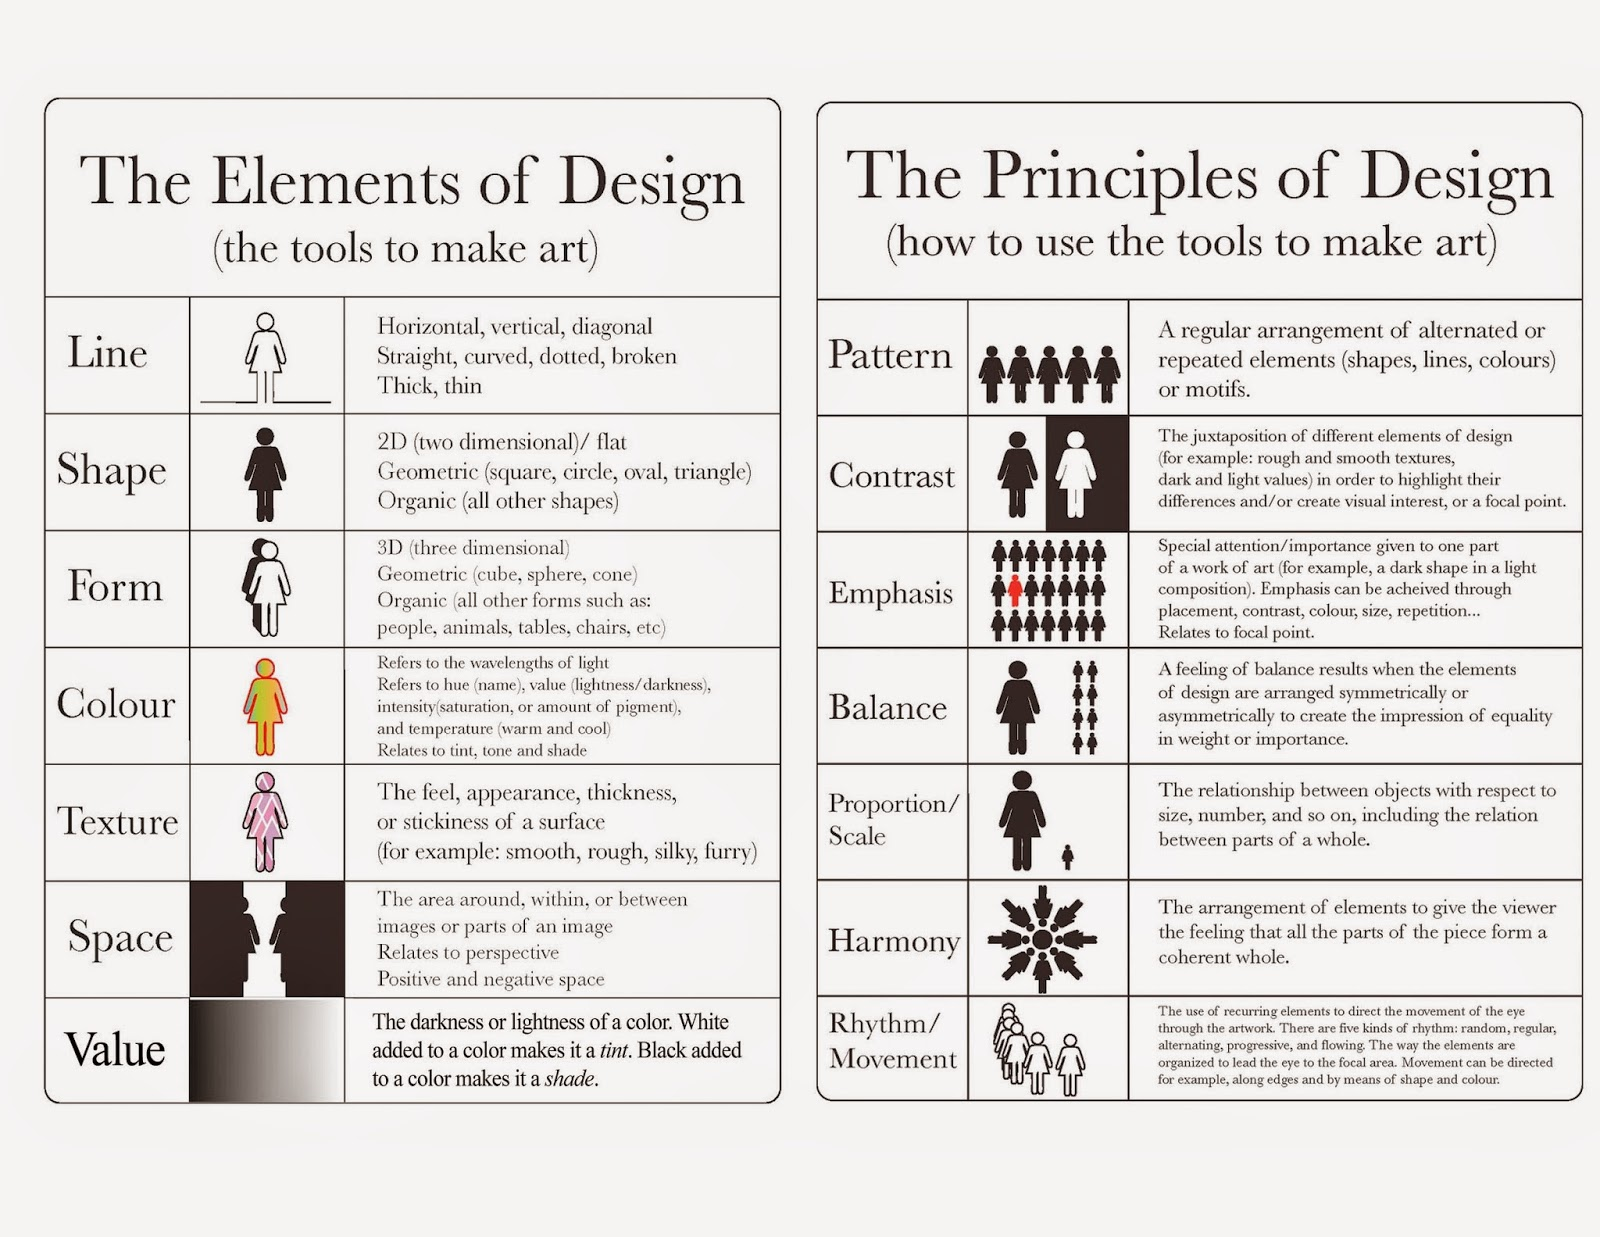 Architecture Design Elements innovation design in education - aside: seeing is believing